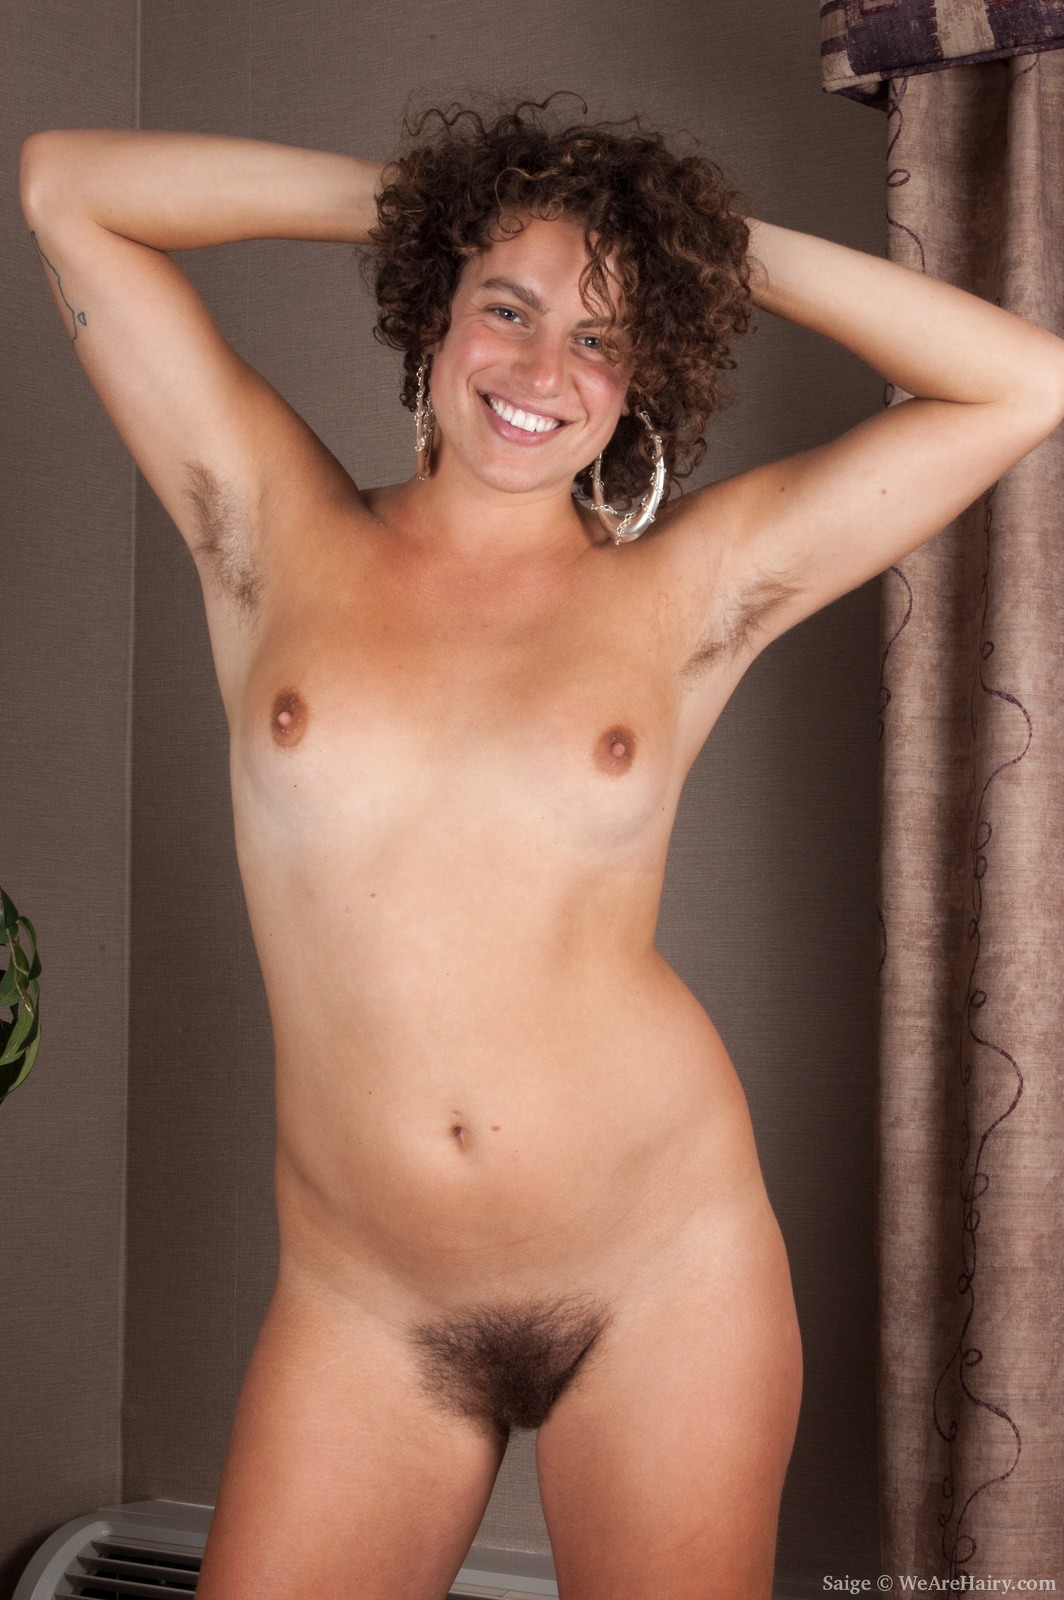 hairy movies hirsute pictures and unlimited downloads of hairy